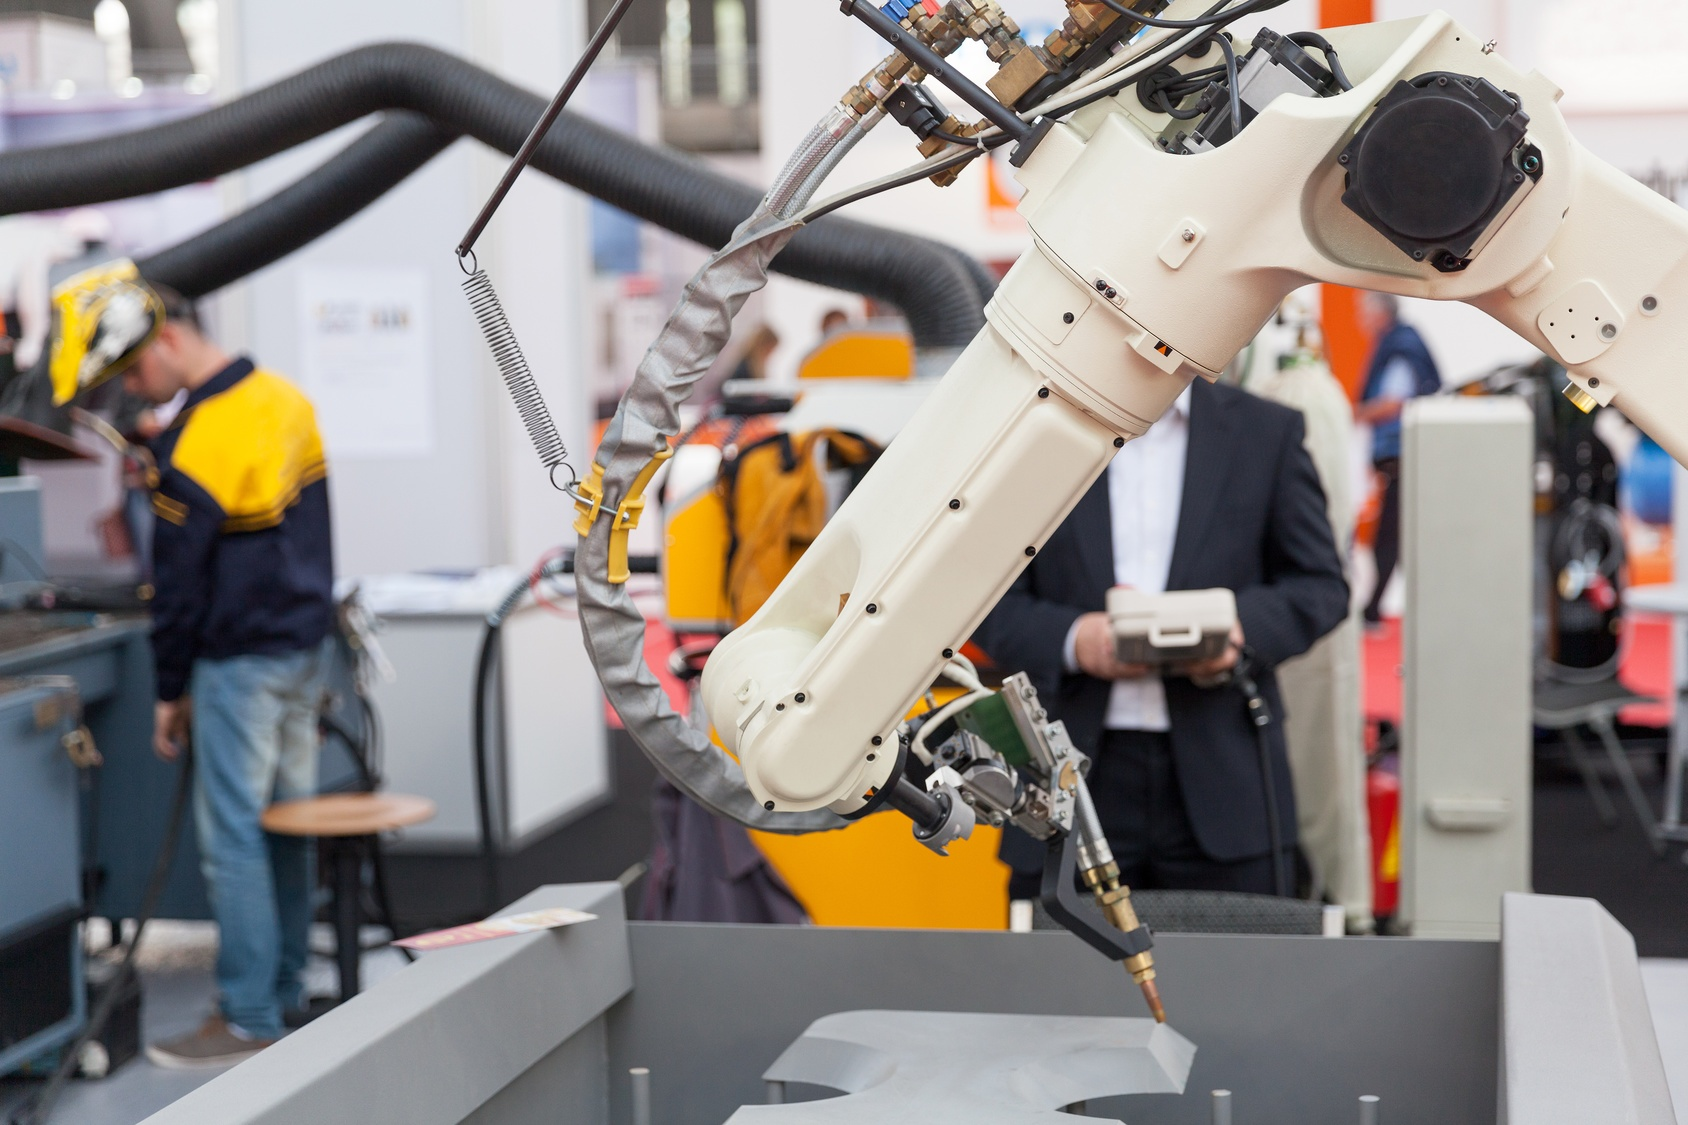 Industrial robot performing automated task in manufacturing facility